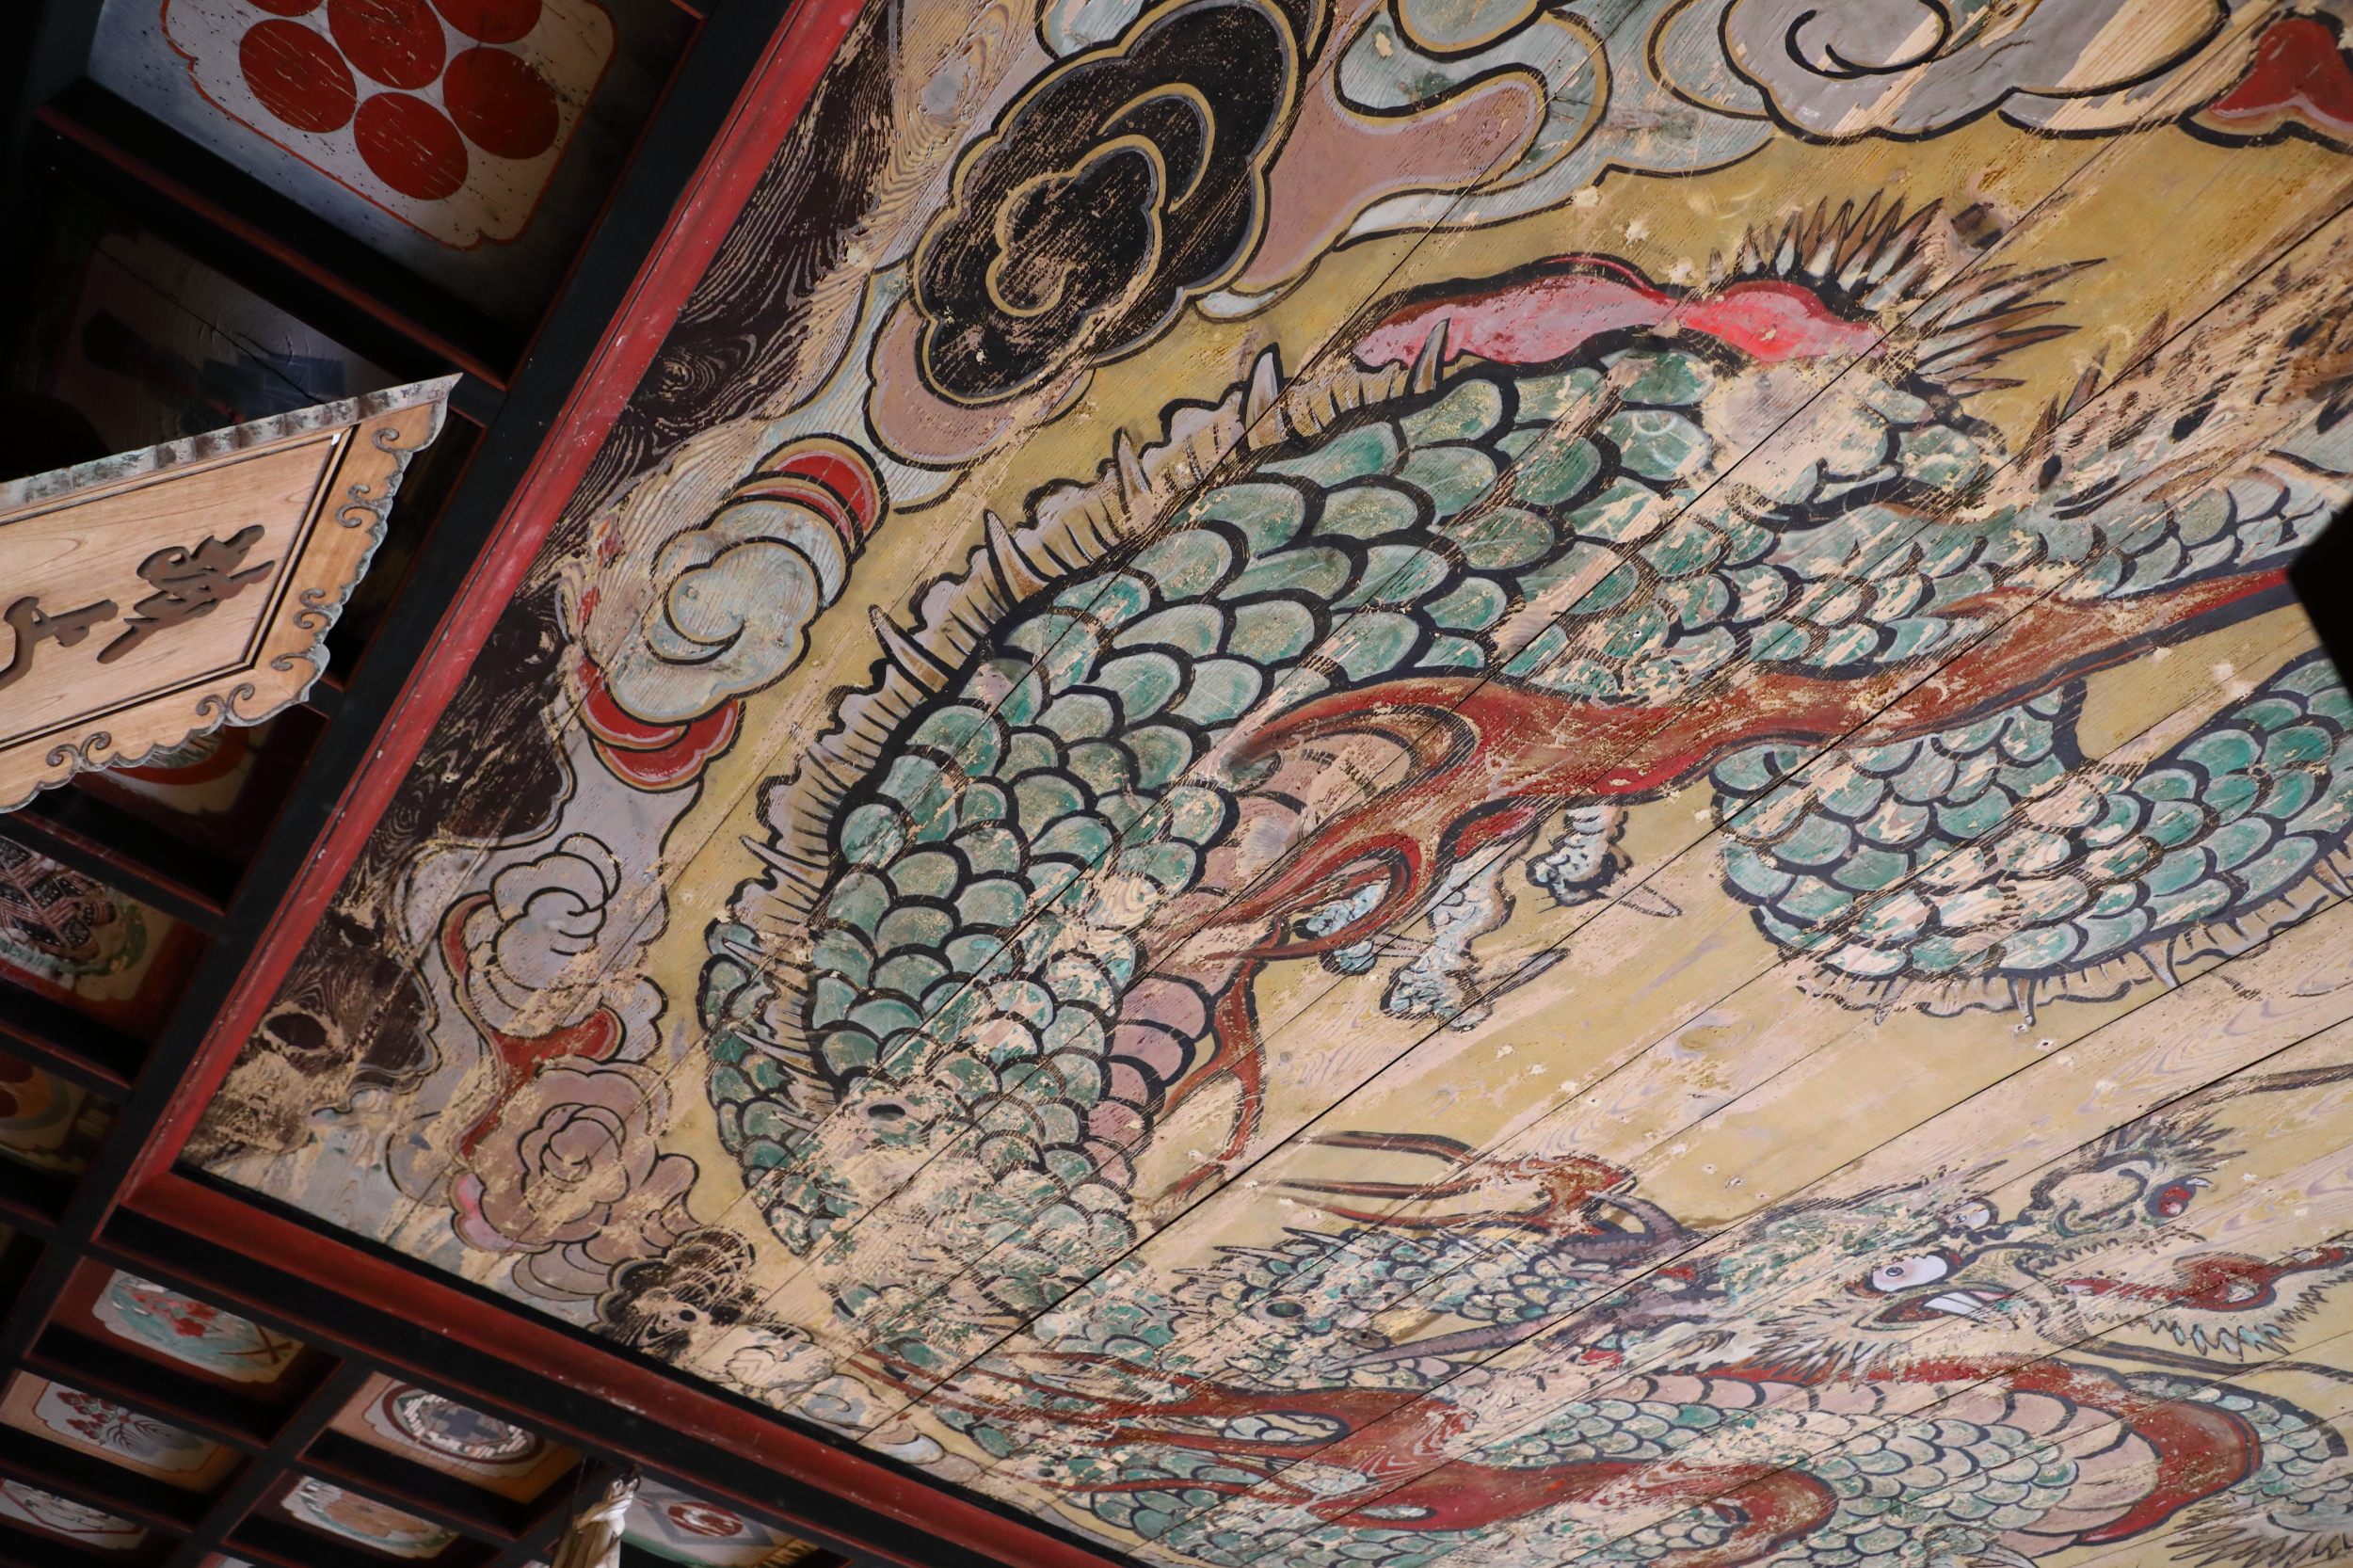 The colorful and exuberant painting of a Zen Buddhist dragon on the ceiling of the main hall of Kigami Shrine is characteristic of the grand yet rustic style of old religious buildings in Shimane prefecture.